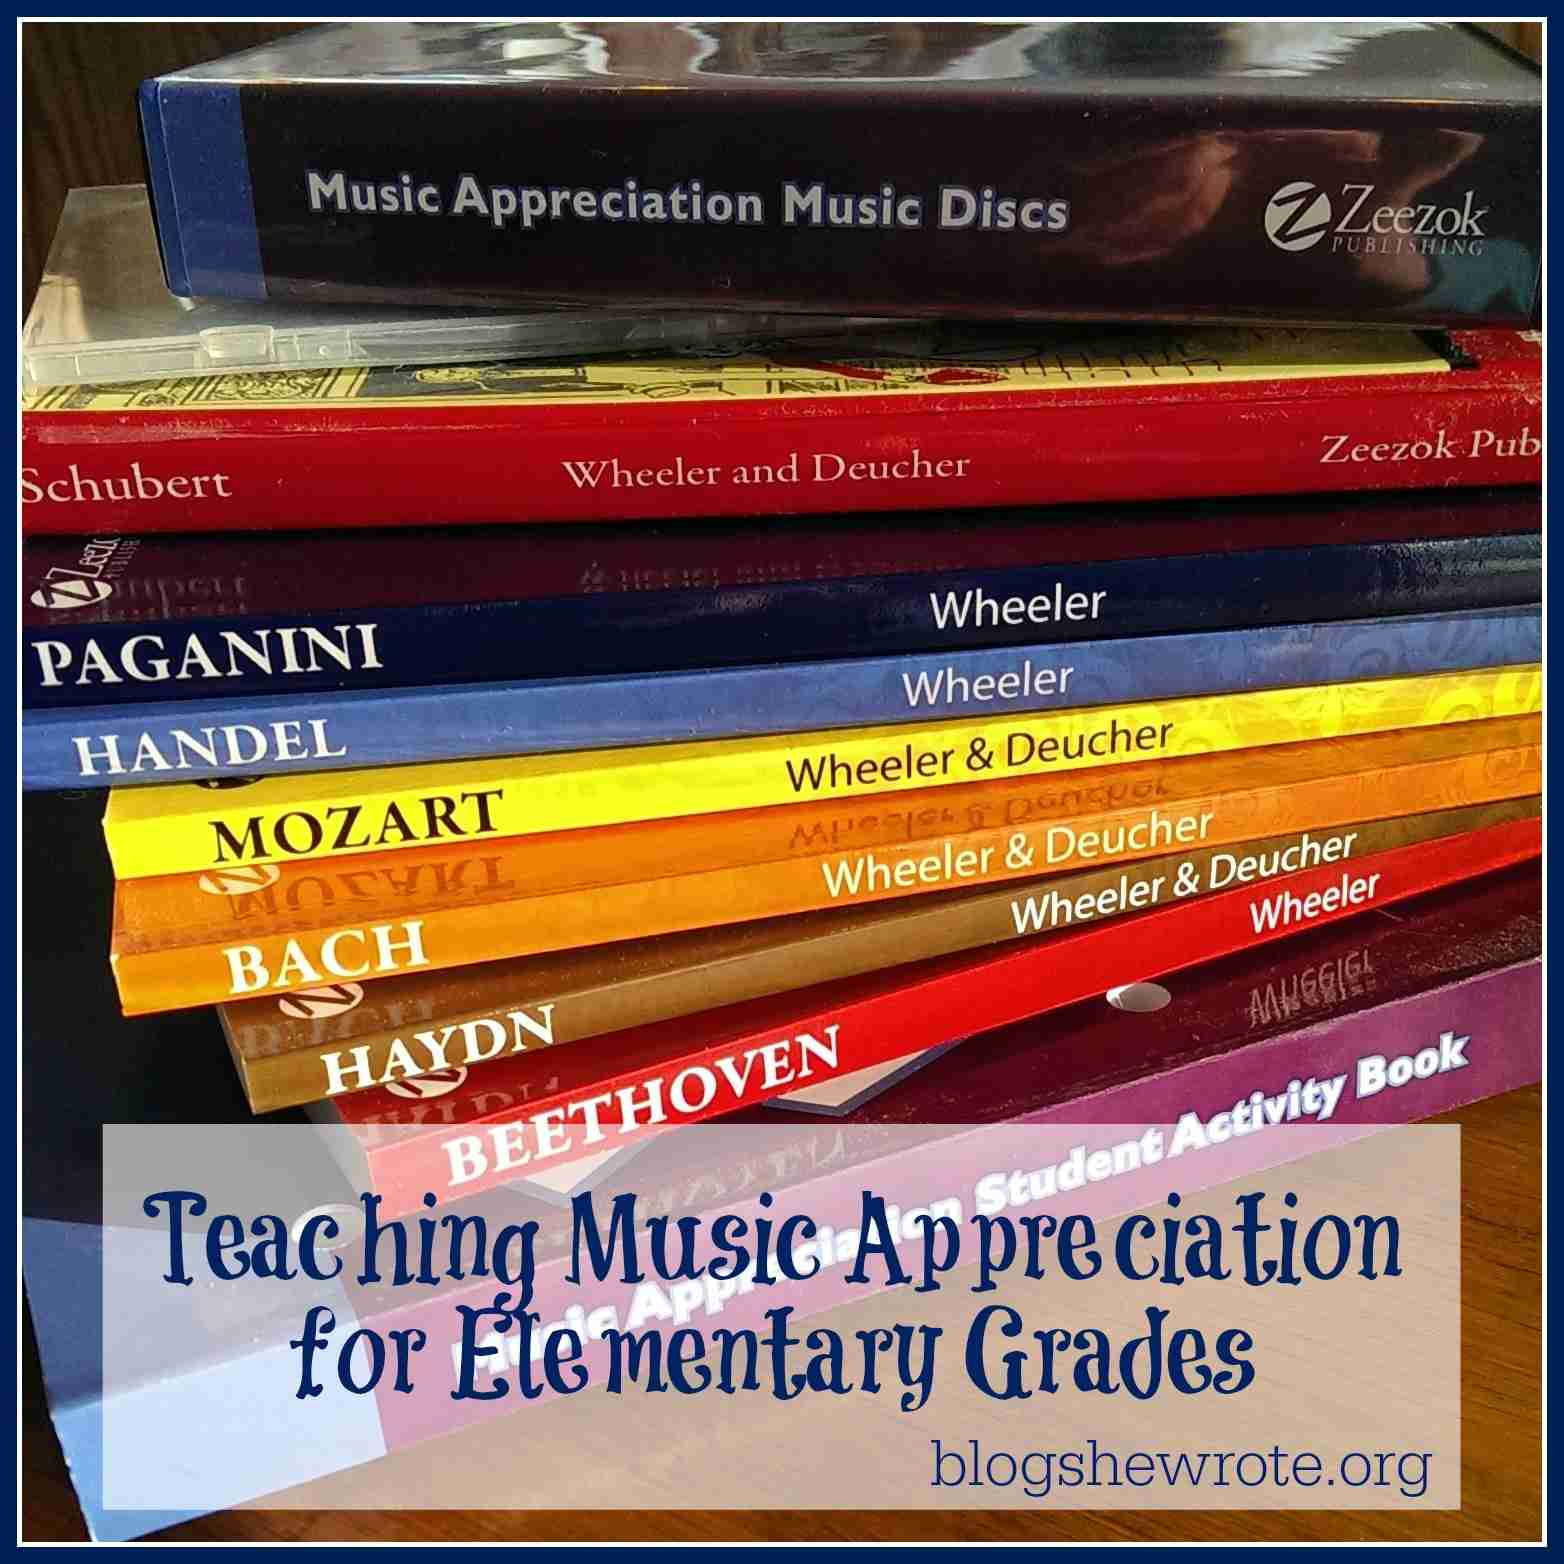 music appreciation 7 essay Music appreciation topic: 1) haydn, string quartet op 76, no 3, emperor, mvt 2 haydn, symphony no 94, surprise, mvt 2 this paper you will reflect on two pieces we have studied in this class, focusing on the ways they affected and were affected by their context.